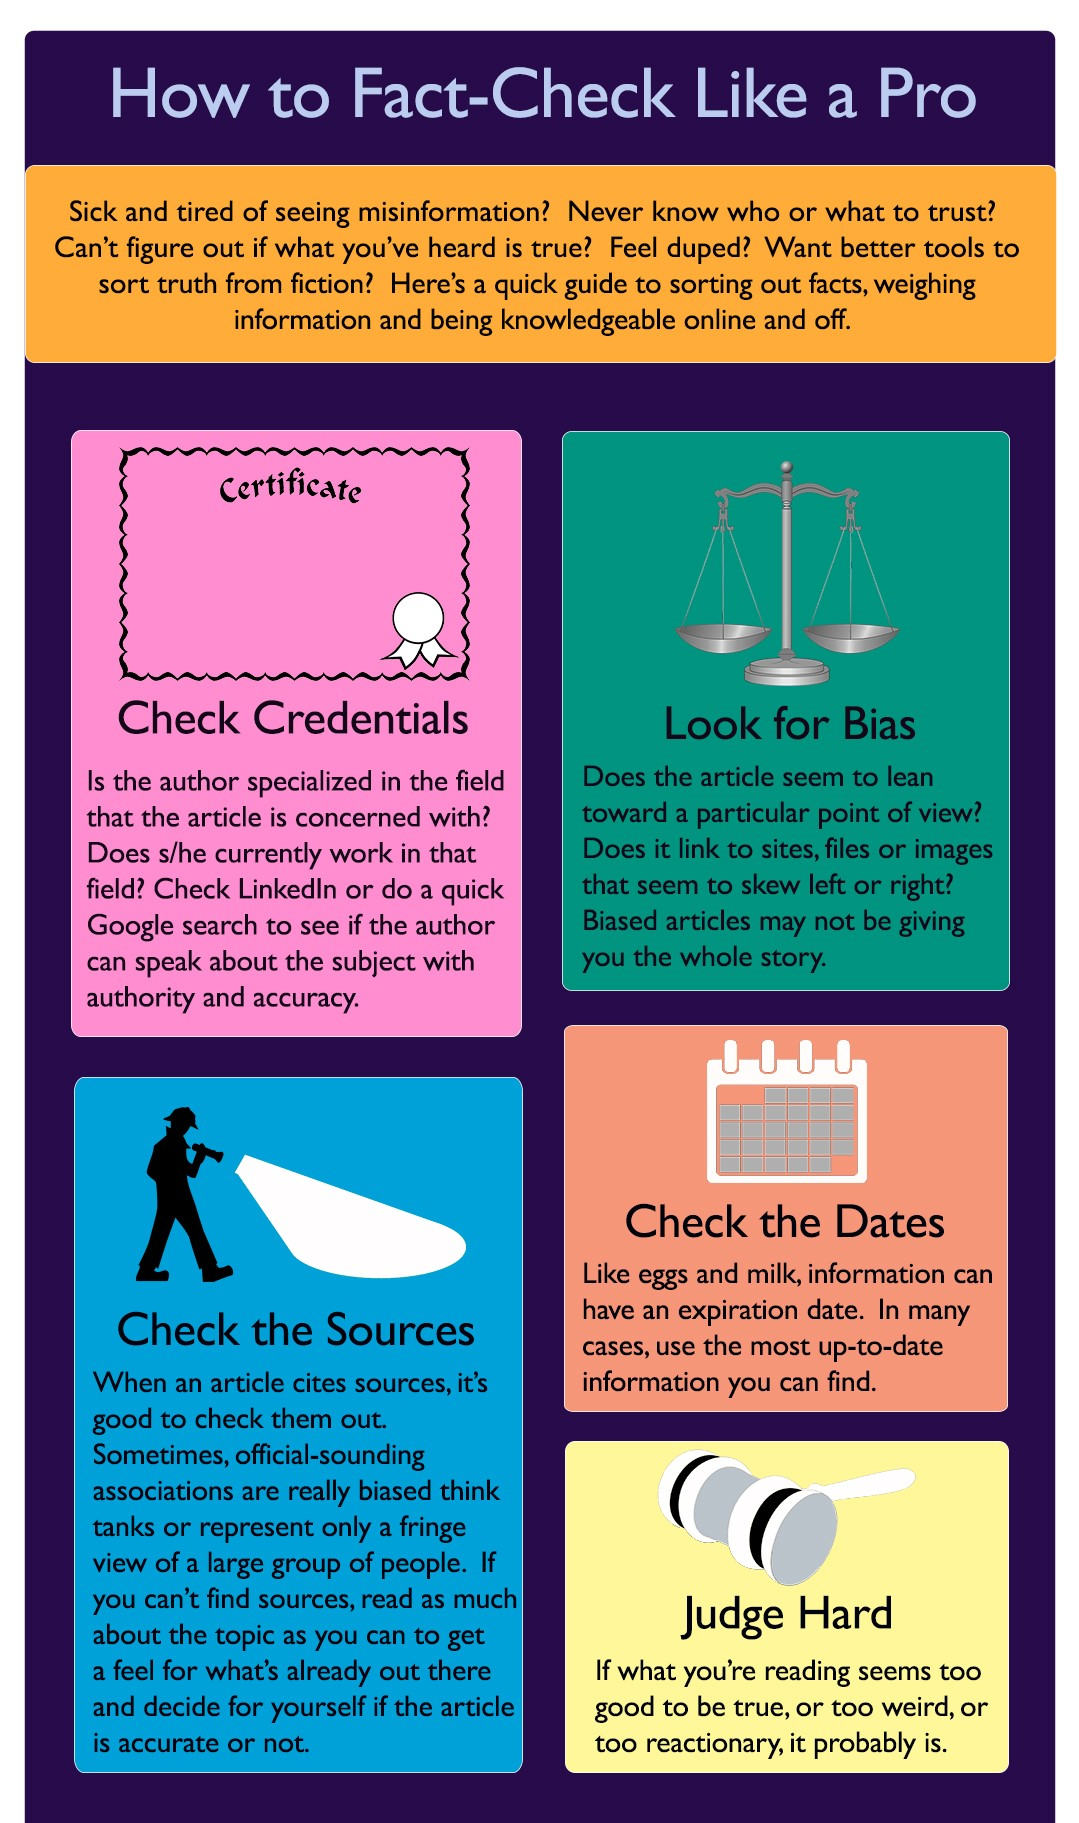 How to Fact-Check Like a Pro  Sick and tired of seeing misinformation? Never know who or what to trust? Can't figure out if what you've heard is true? Feel duped? Want better tools to sort truth from fiction? Here's a quick guide to sorting out facts, weighing information and being knowledgeable online and off.      Check Credentials. Is the author specialized in the field that the article is concerned with? Does s/he currently work in that field? Check LinkedIn or do a quick Google search to see if the author can speak about the subject with authority and accuracy.     Check the Sources. When an article cites sources, it's good to check them out. Sometimes, official-sounding associations are really biased think tanks or represent only a fringe view of a large group of people. If you can't find sources, read as much about the topic as you can to get a feel for what's already out there and decide for yourself if the article is accurate or not.     Look for Bias. Does the article seem to lean toward a particular point of view? Does it link to sites, files or images that seem to skew left or right? Biased articles may not be giving you the whole story.     Check the Dates. Like eggs and milk, information can have an expiration date. In many cases, use the most up-to-date information you can find.     Judge Hard. If what you're reading seems too good to be true, too weird, or too reactionary, it probably is.